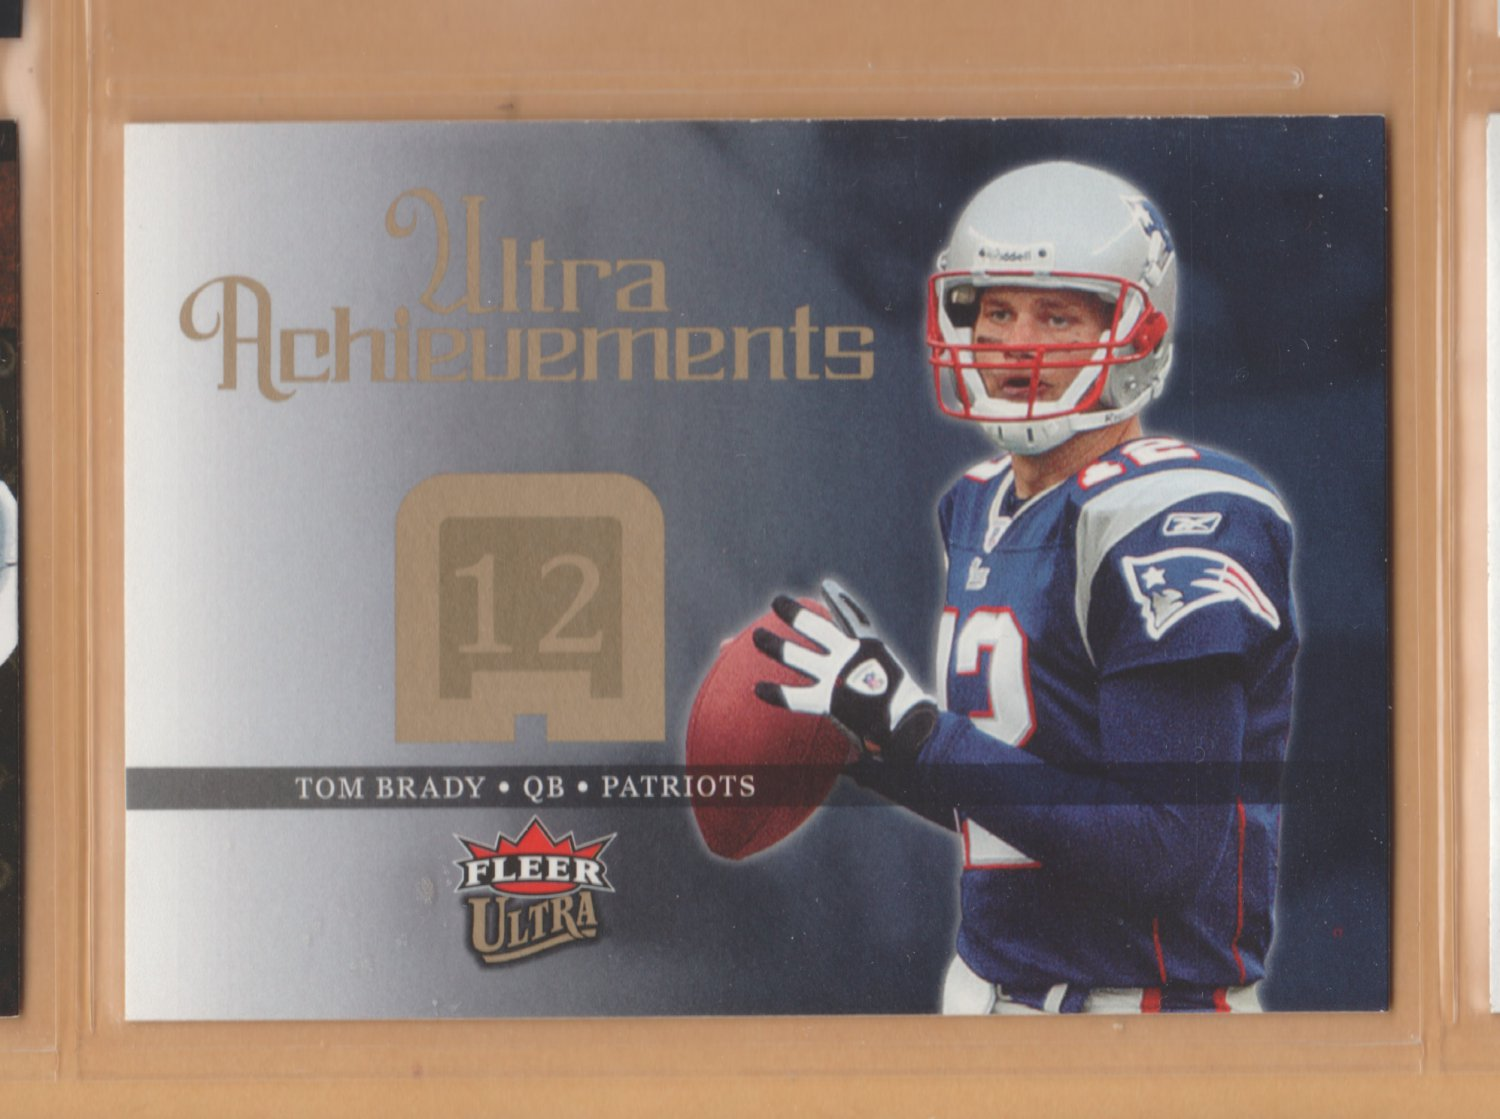 2006 Fleer Ultra Achievements Tom Brady Patriots